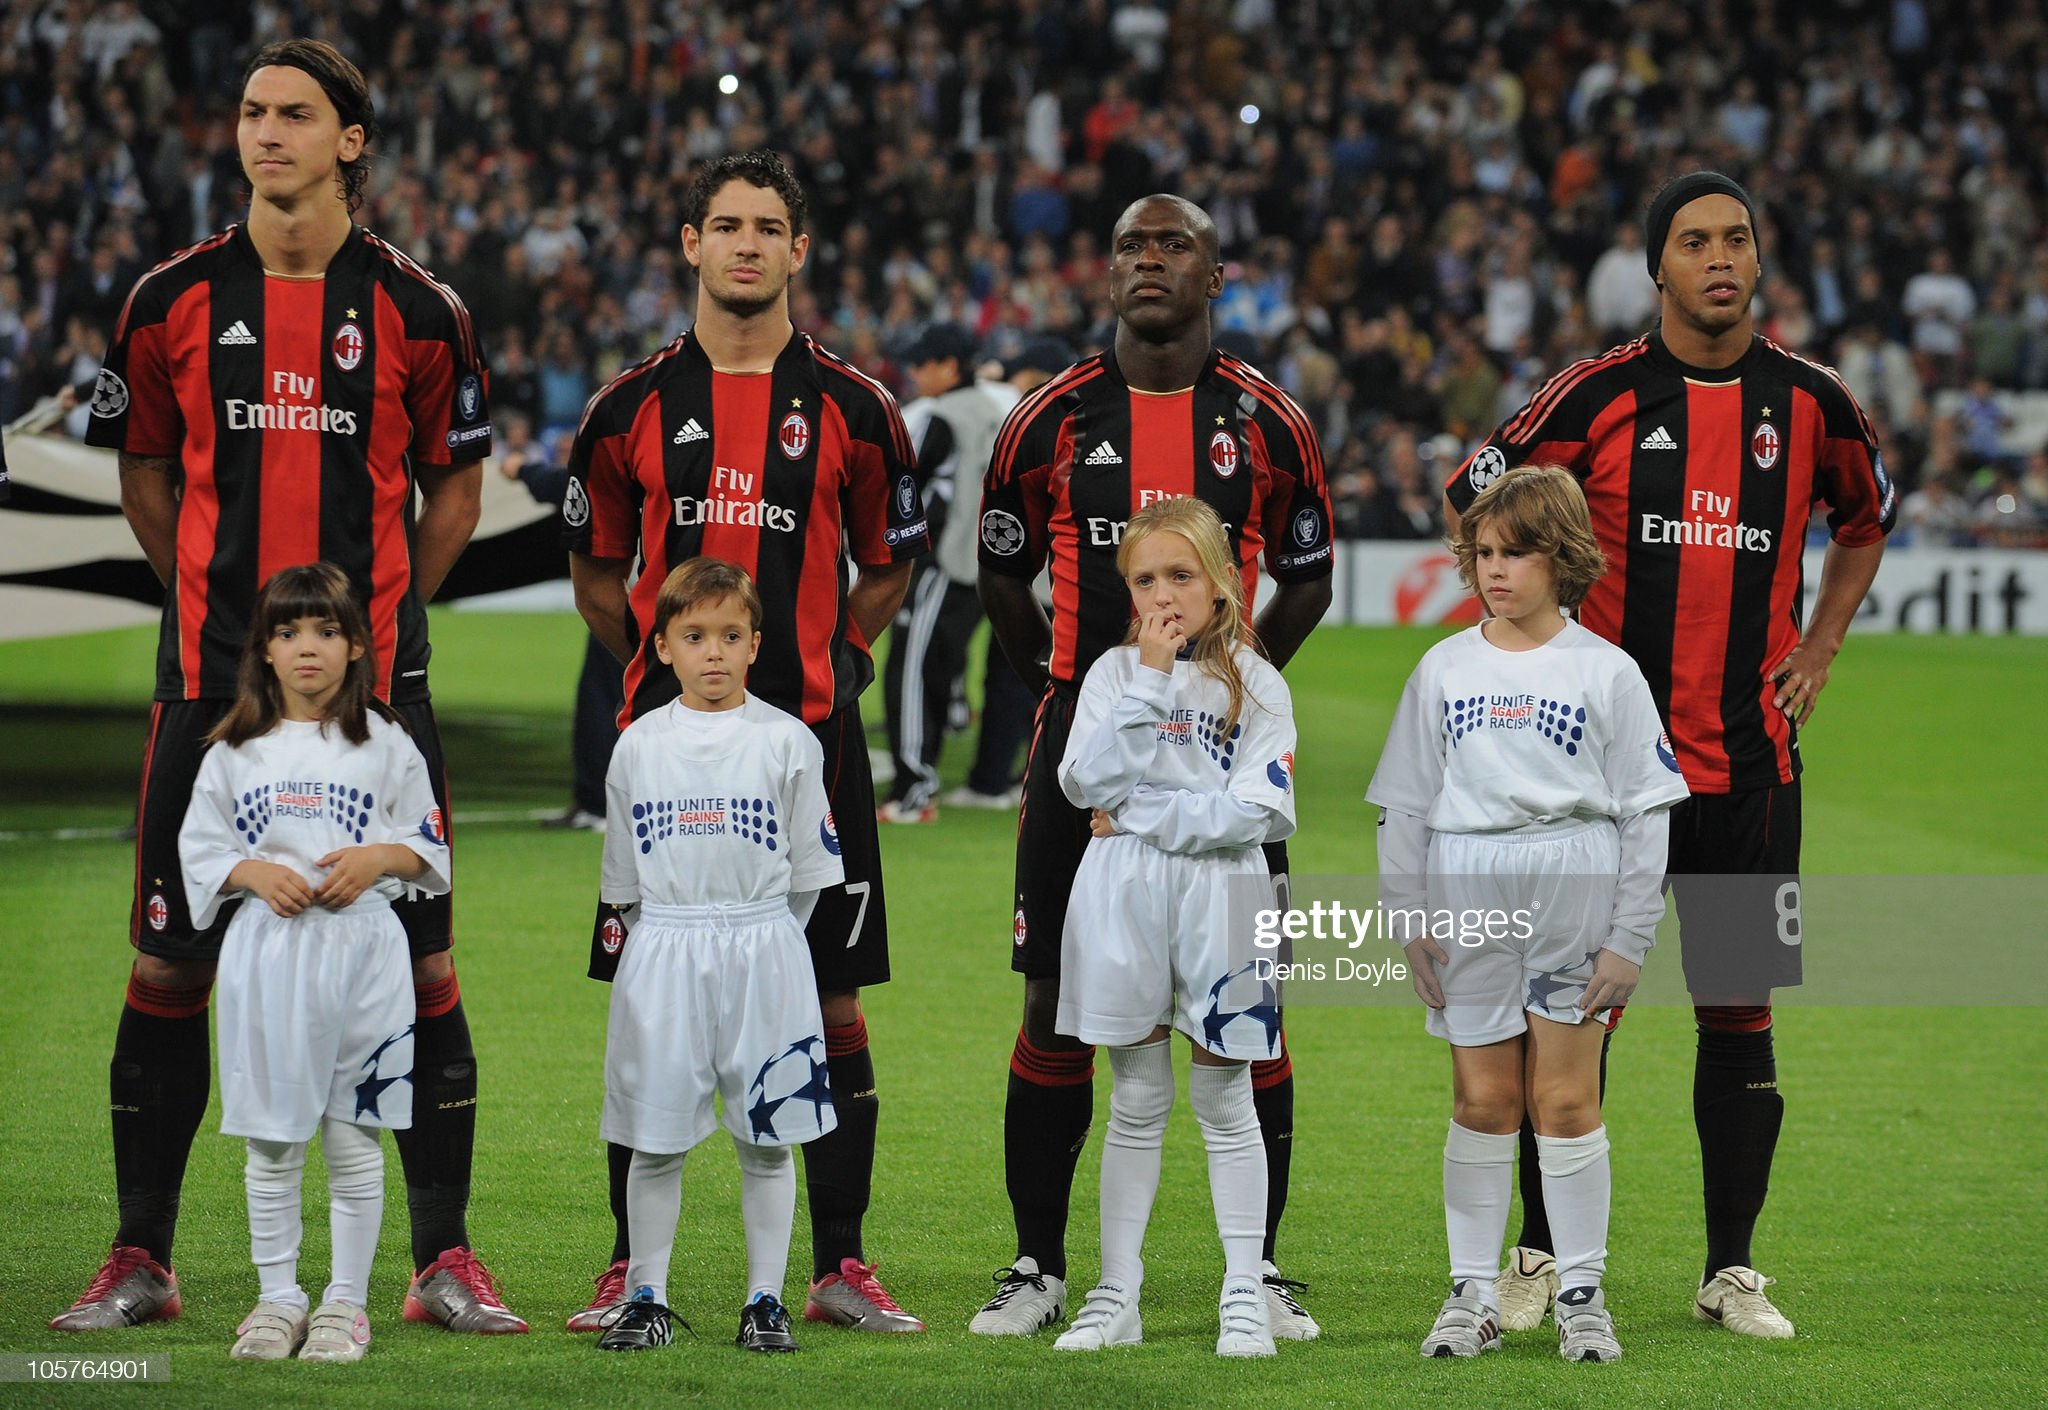 ¿Cuánto mide Alexandre Pato? - Altura - Real height Zlatan-ibrahimovic-pato-clarence-seedorf-and-ronaldinho-lineup-before-picture-id105764901?s=2048x2048